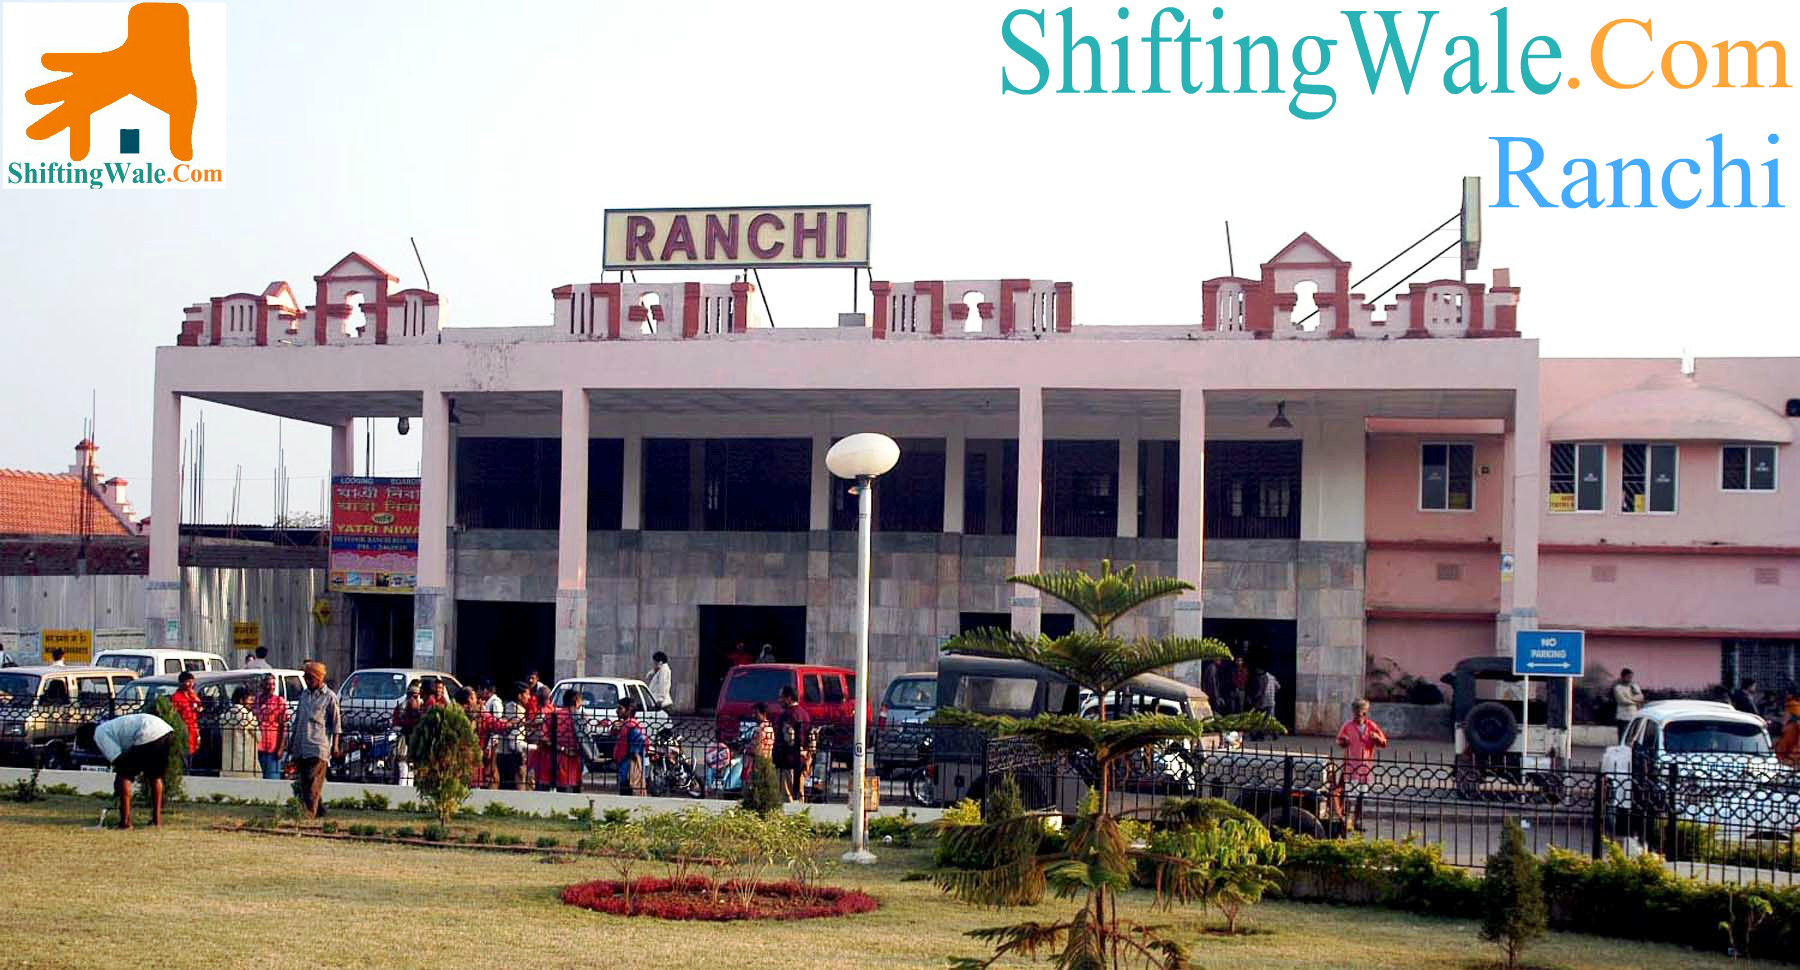 Need Best Packing and Moving Services in Ranchi